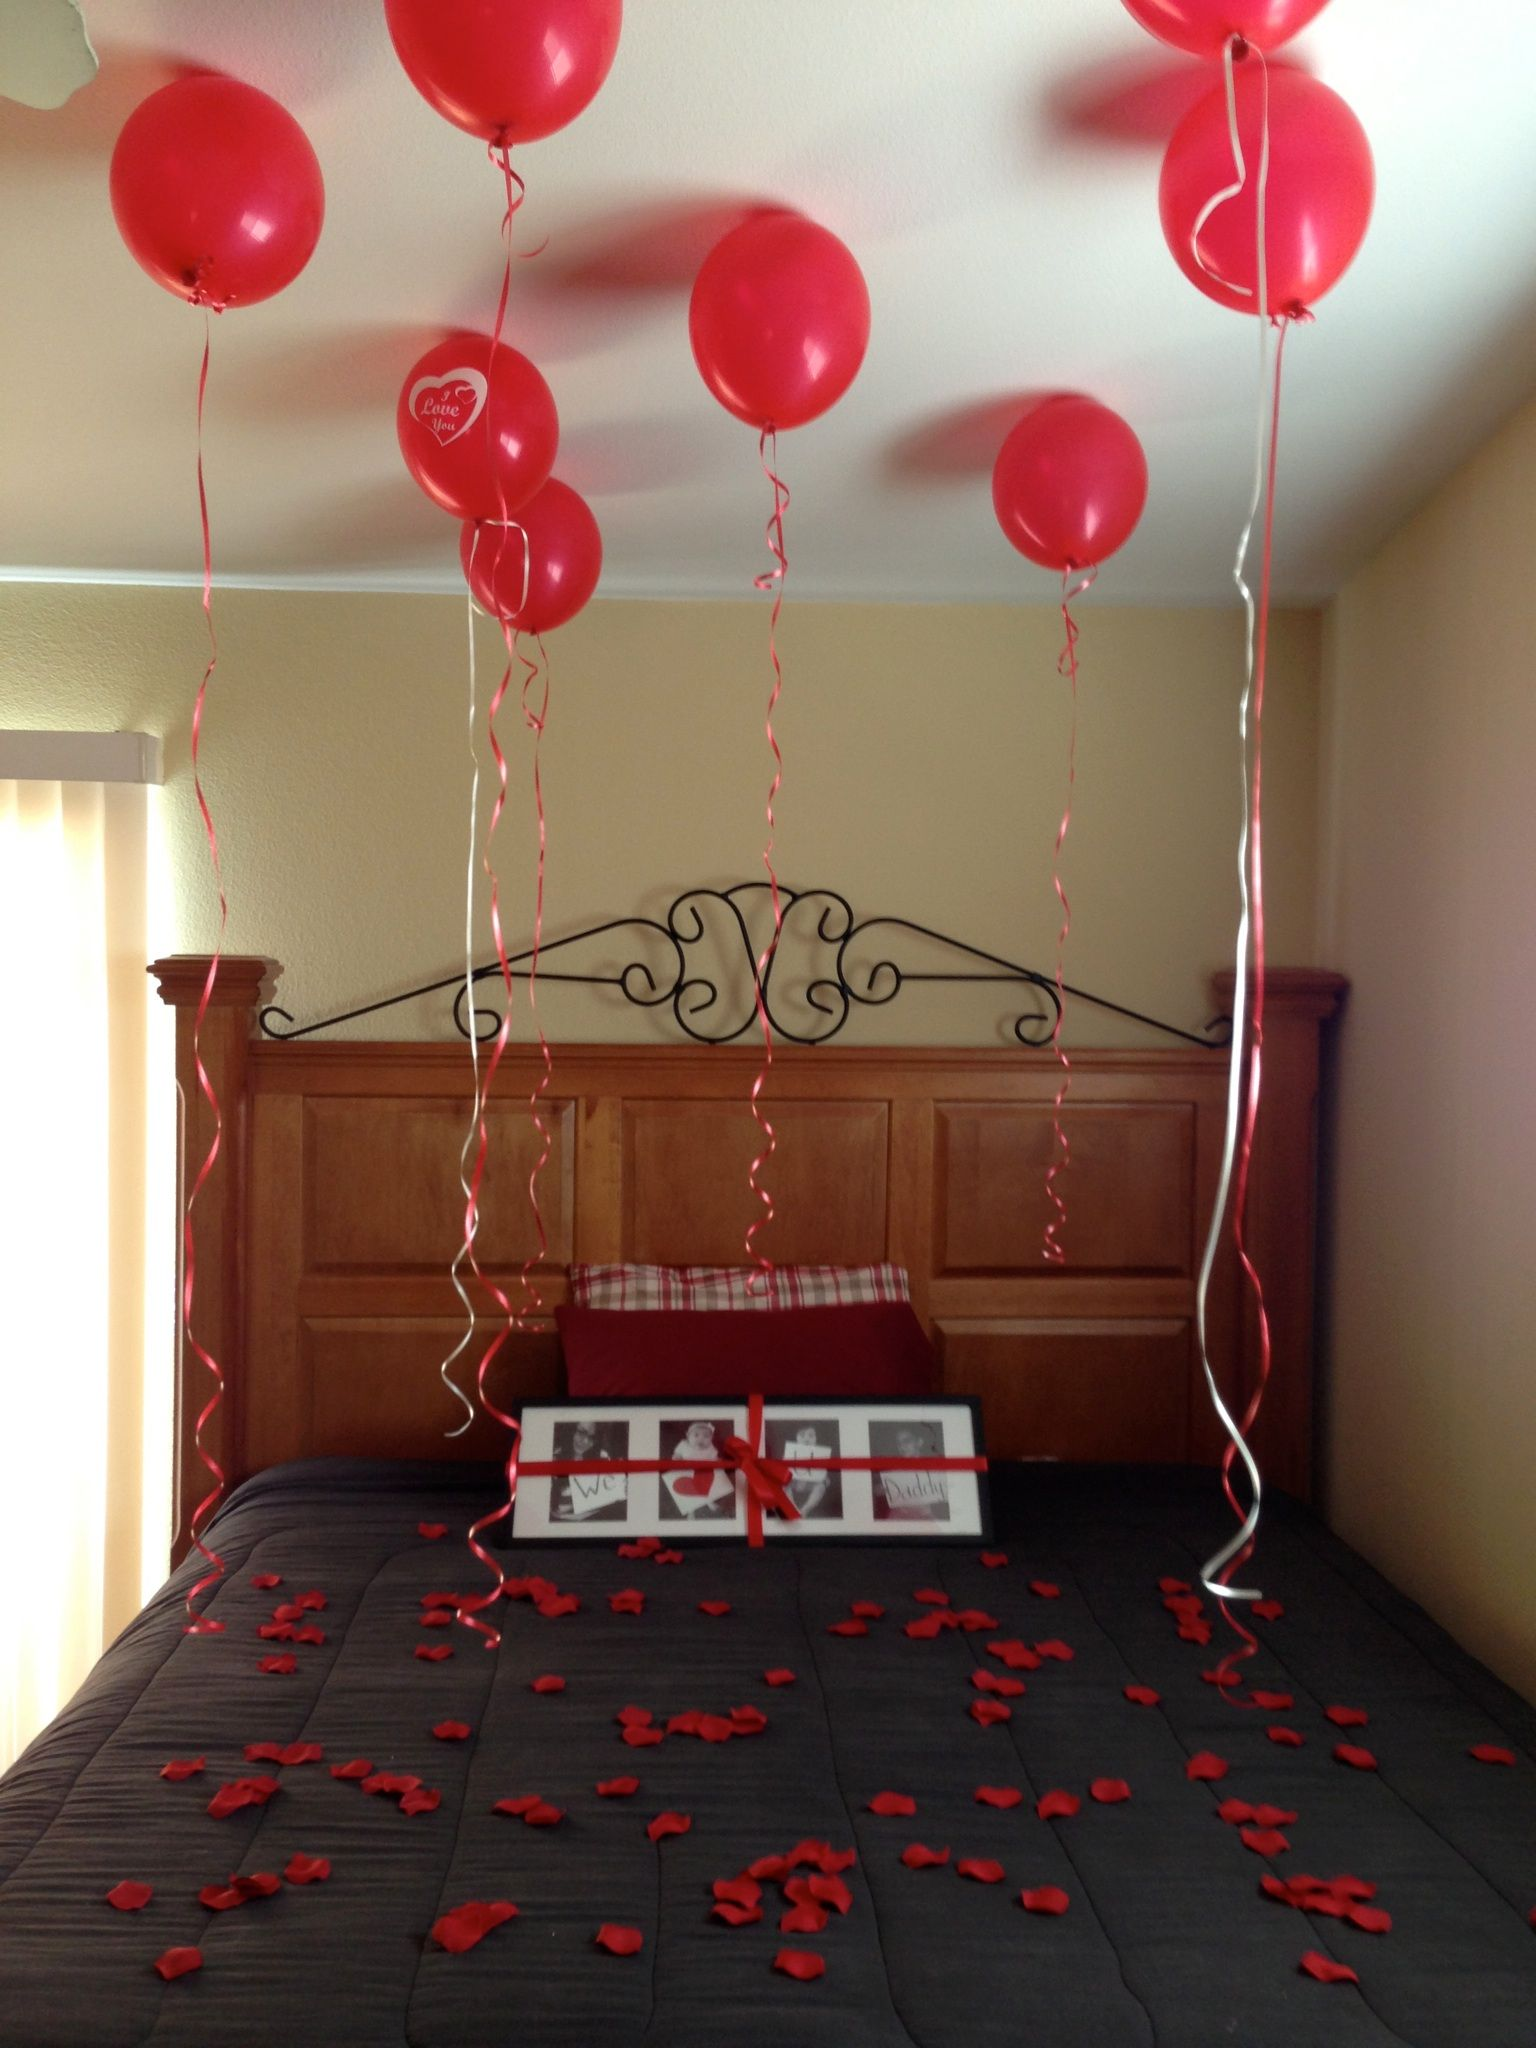 Valentines Day Ideas For The Bedroom Valentineu0027s Day for him (husband-father)